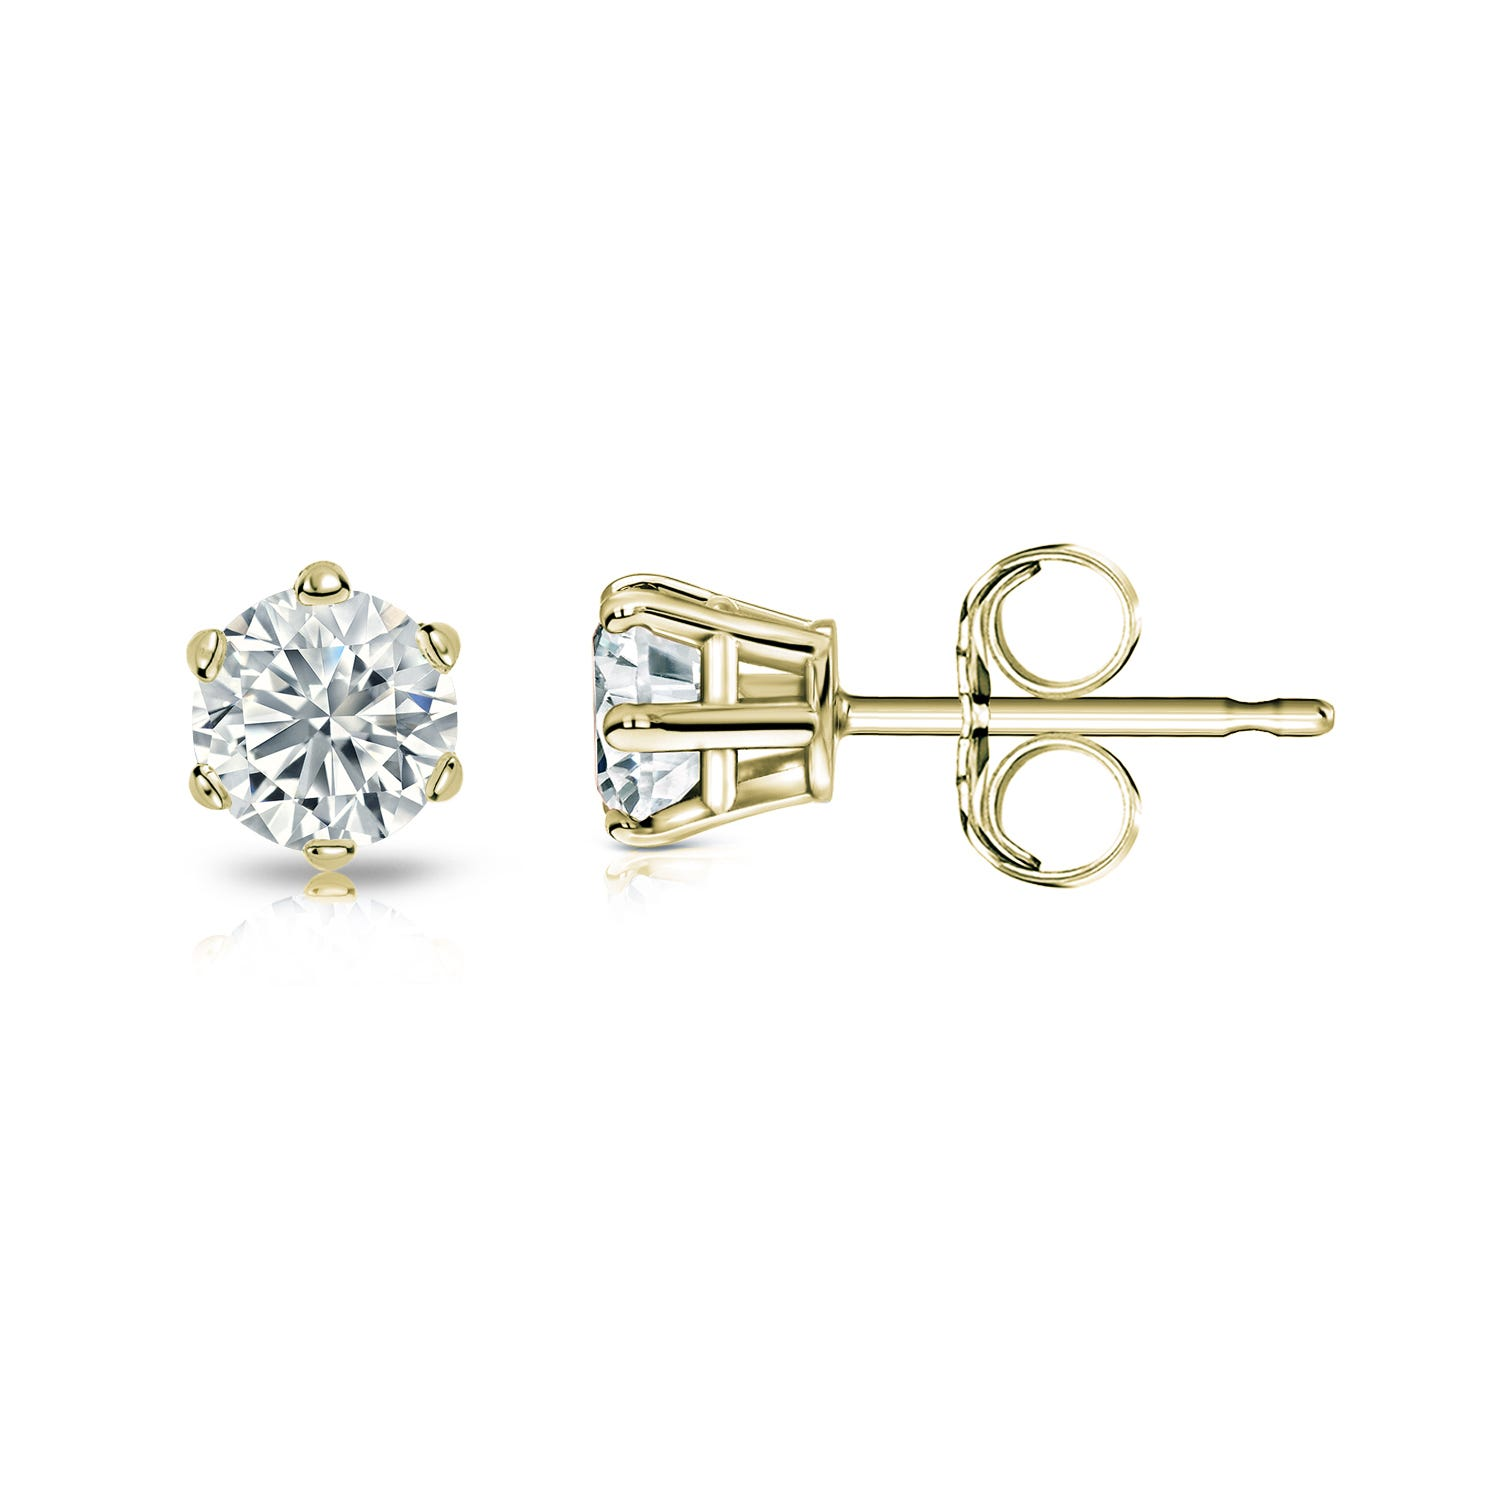 Round Diamond 1/10ctw. (IJ-I1) Solitaire Stud 6-Prong Earrings in 14K Yellow Gold